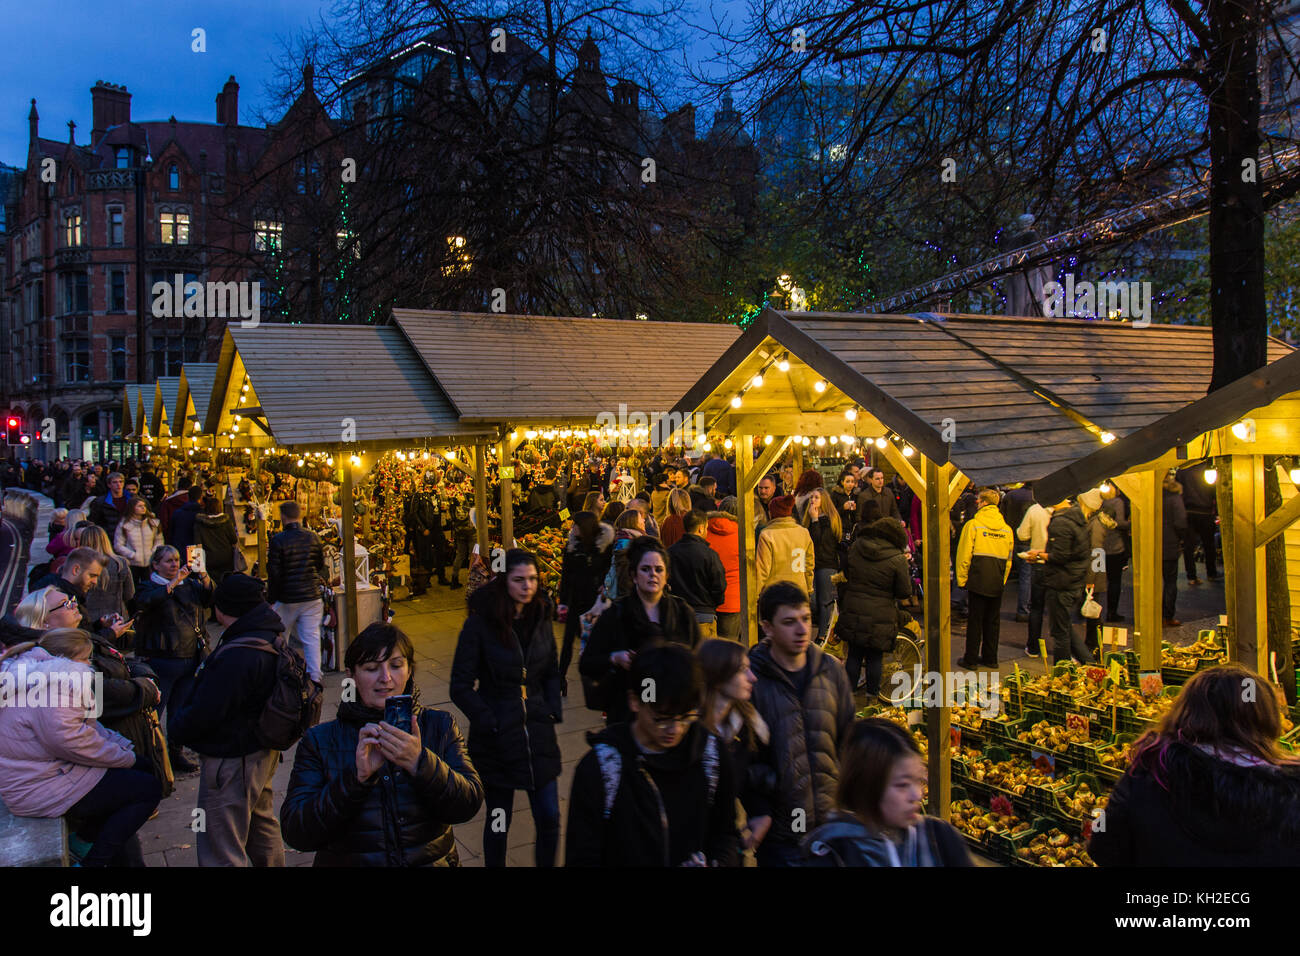 Manchester Christmas Market in Albert Square Manchester UK on 11 Nov 2017  Crowds of people Christmas shopping on - Stock Image